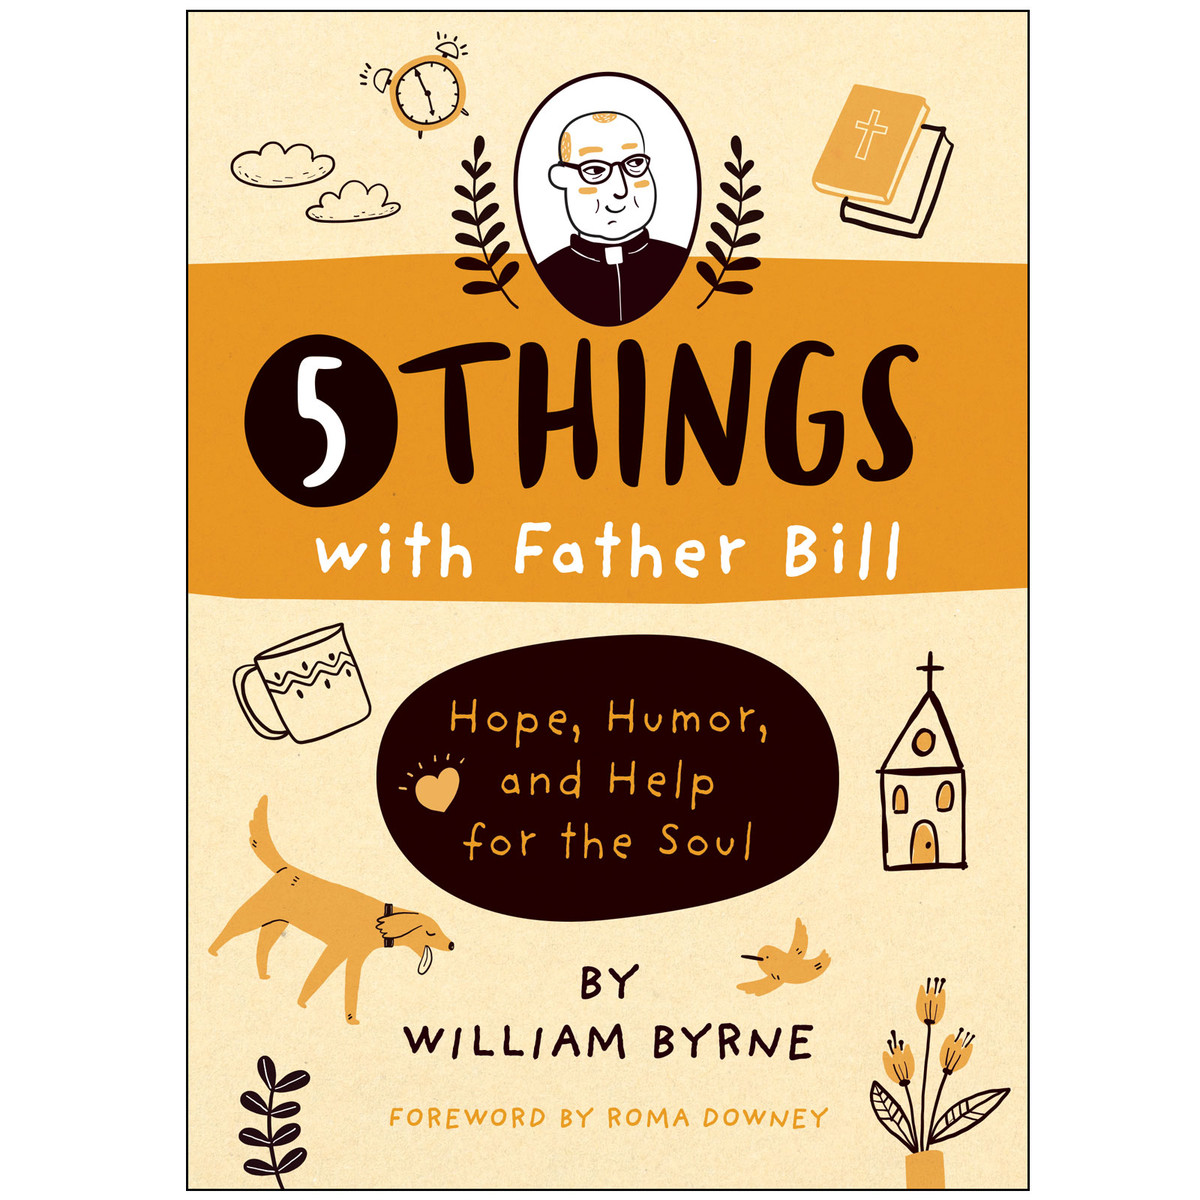 5 Things with Father Bill-1